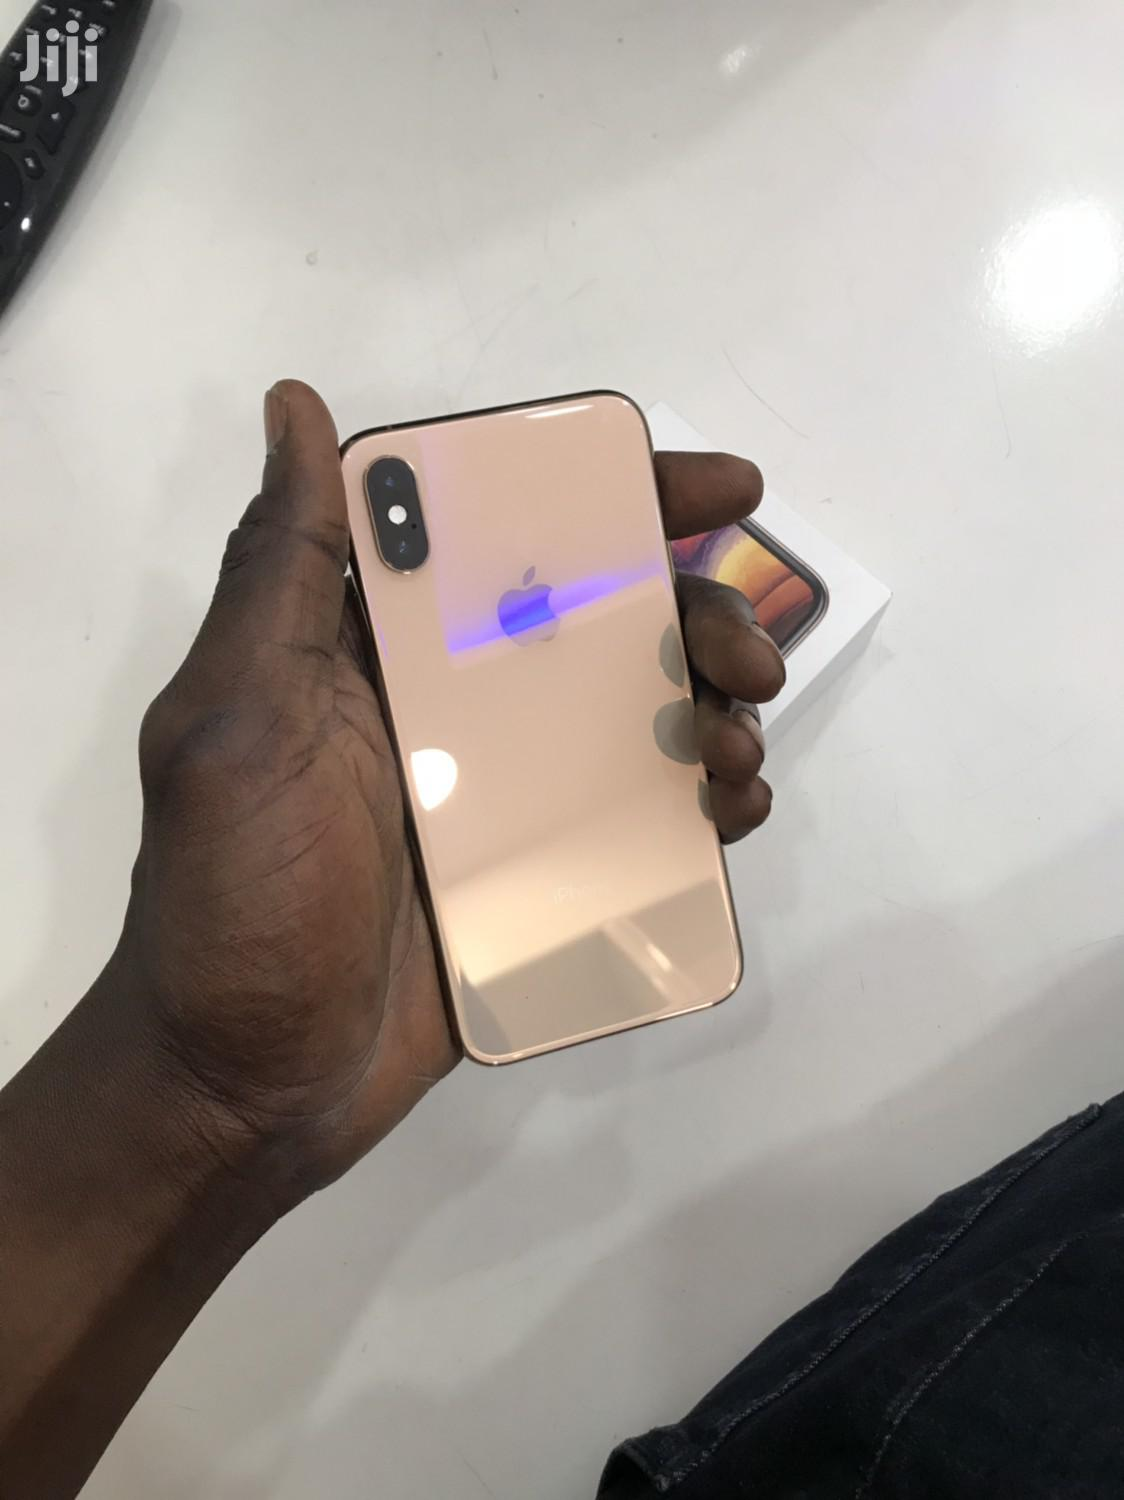 Apple iPhone XS 256 GB Gold   Mobile Phones for sale in Wuse 2, Abuja (FCT) State, Nigeria